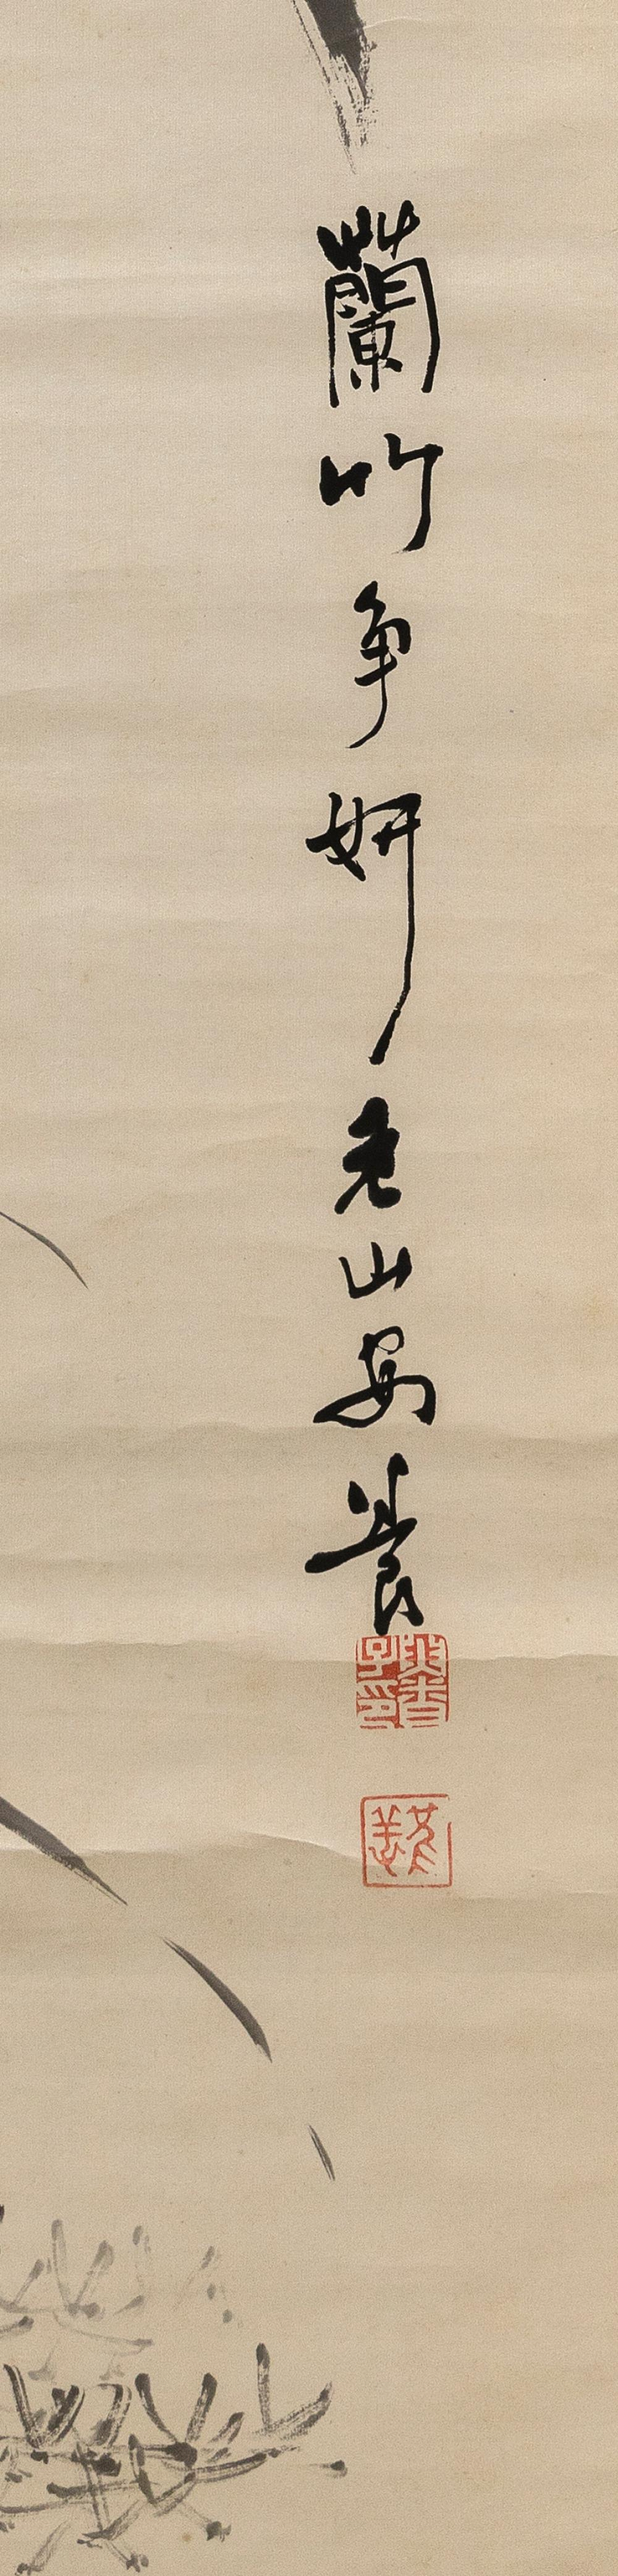 JAPANESE SCROLL PAINTING ON PAPER BY YASUDA ROZAN (1830-1882) Depicts bamboo. Marked with calligraphy and seal marks. 45